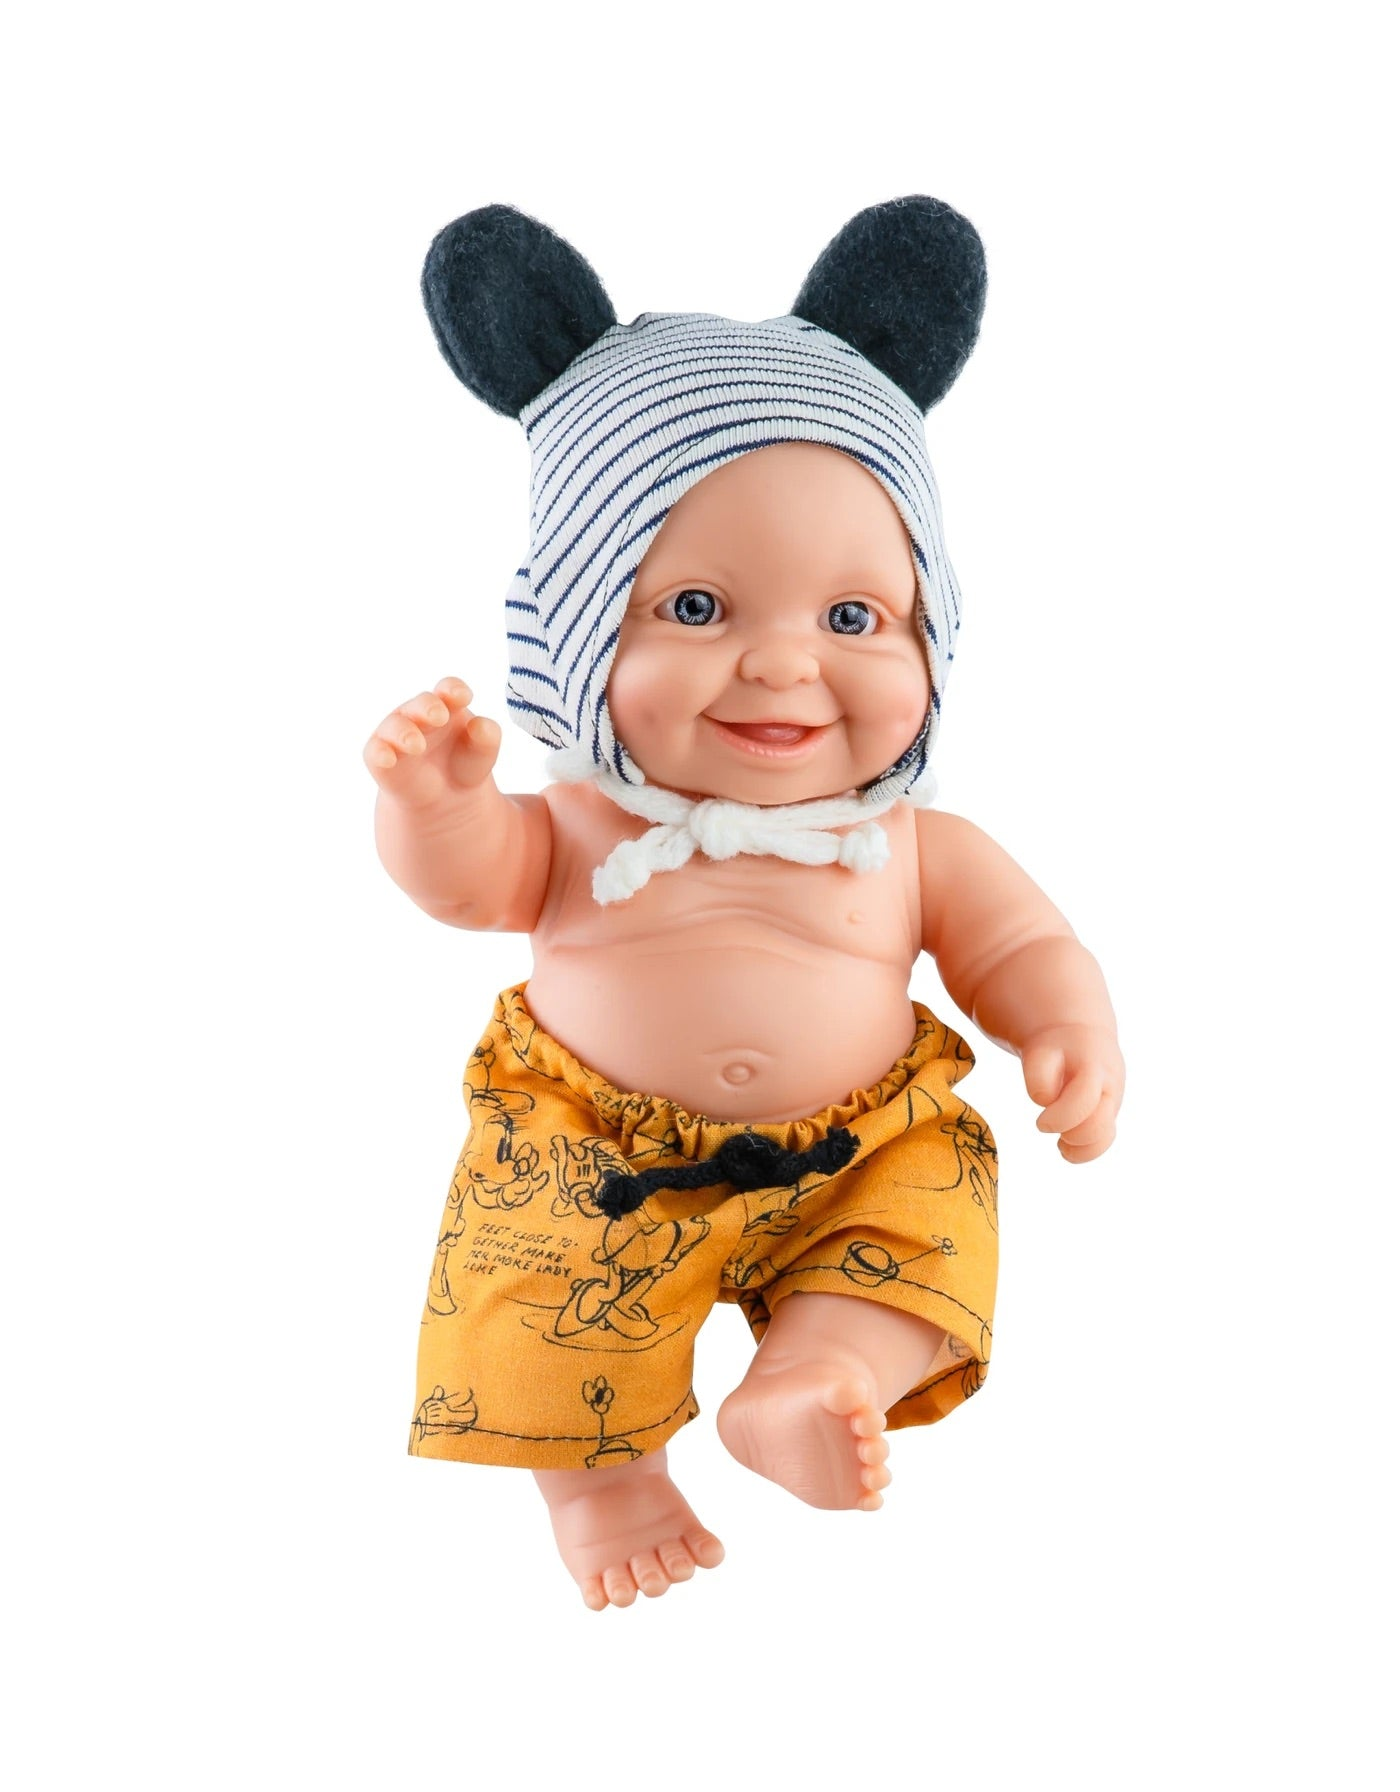 Paola Reina Greg with Outfit Newborn Peques Baby Boy Doll